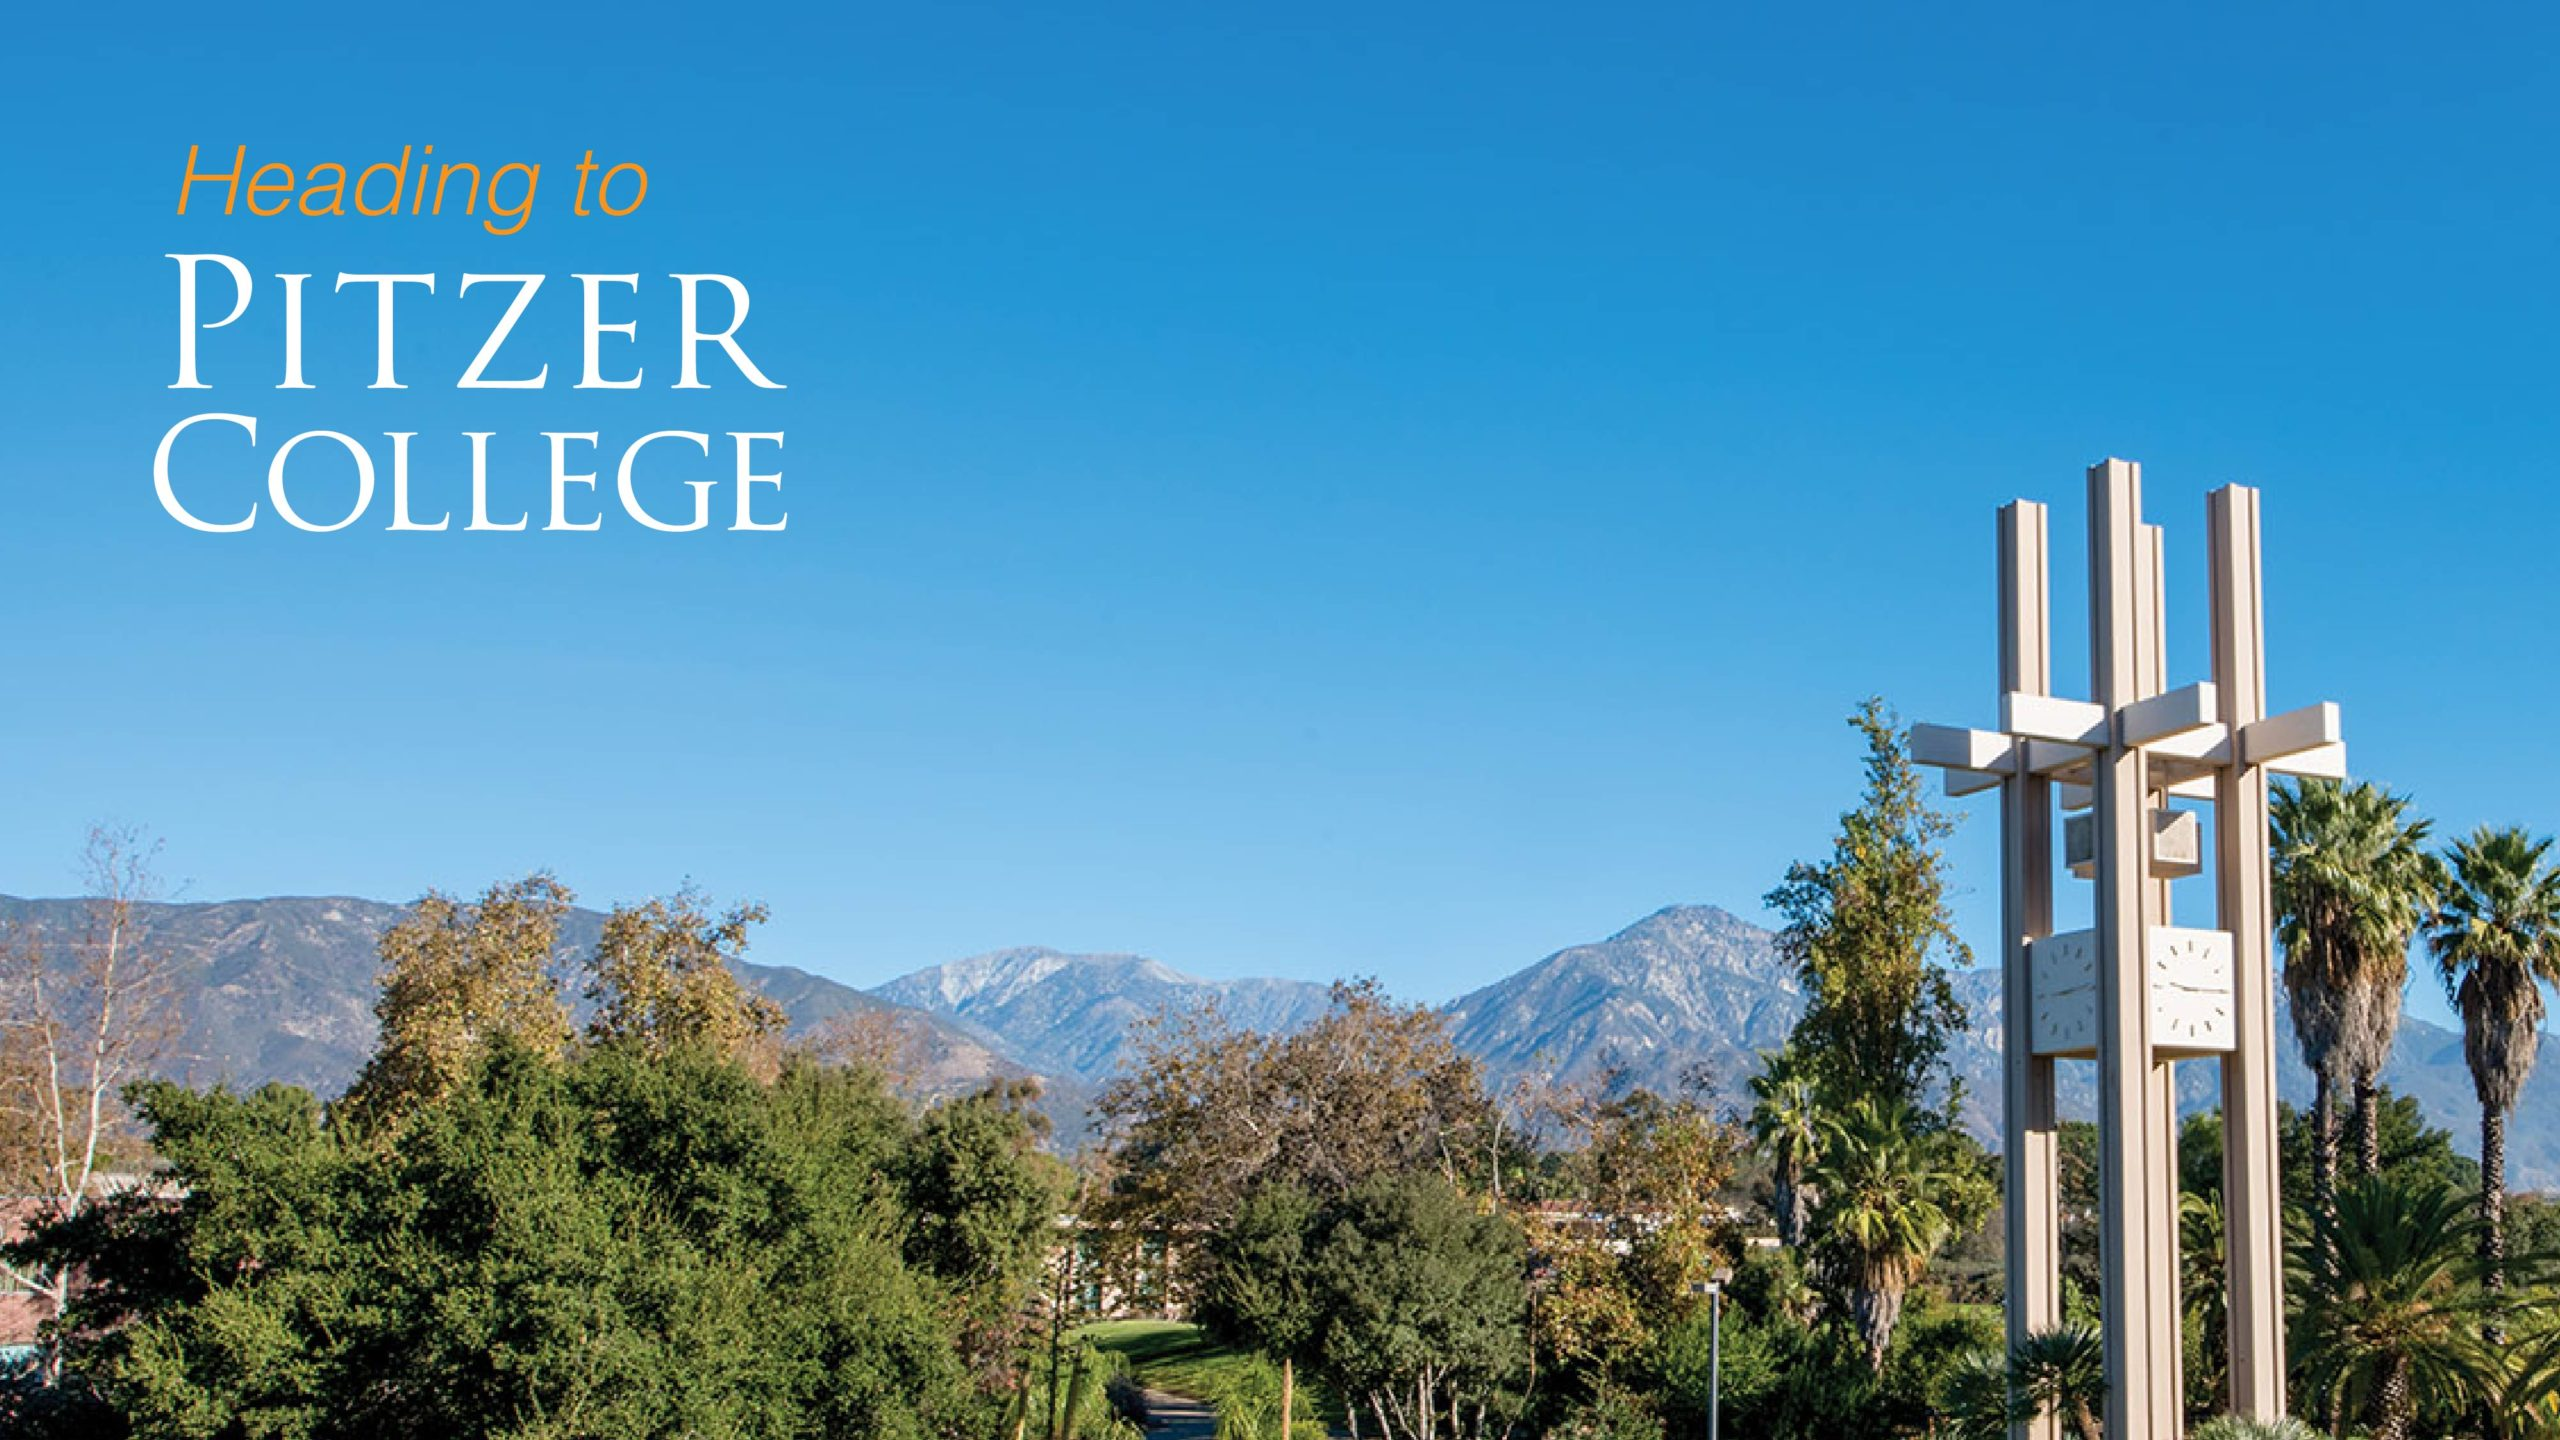 Heading to Pitzer College